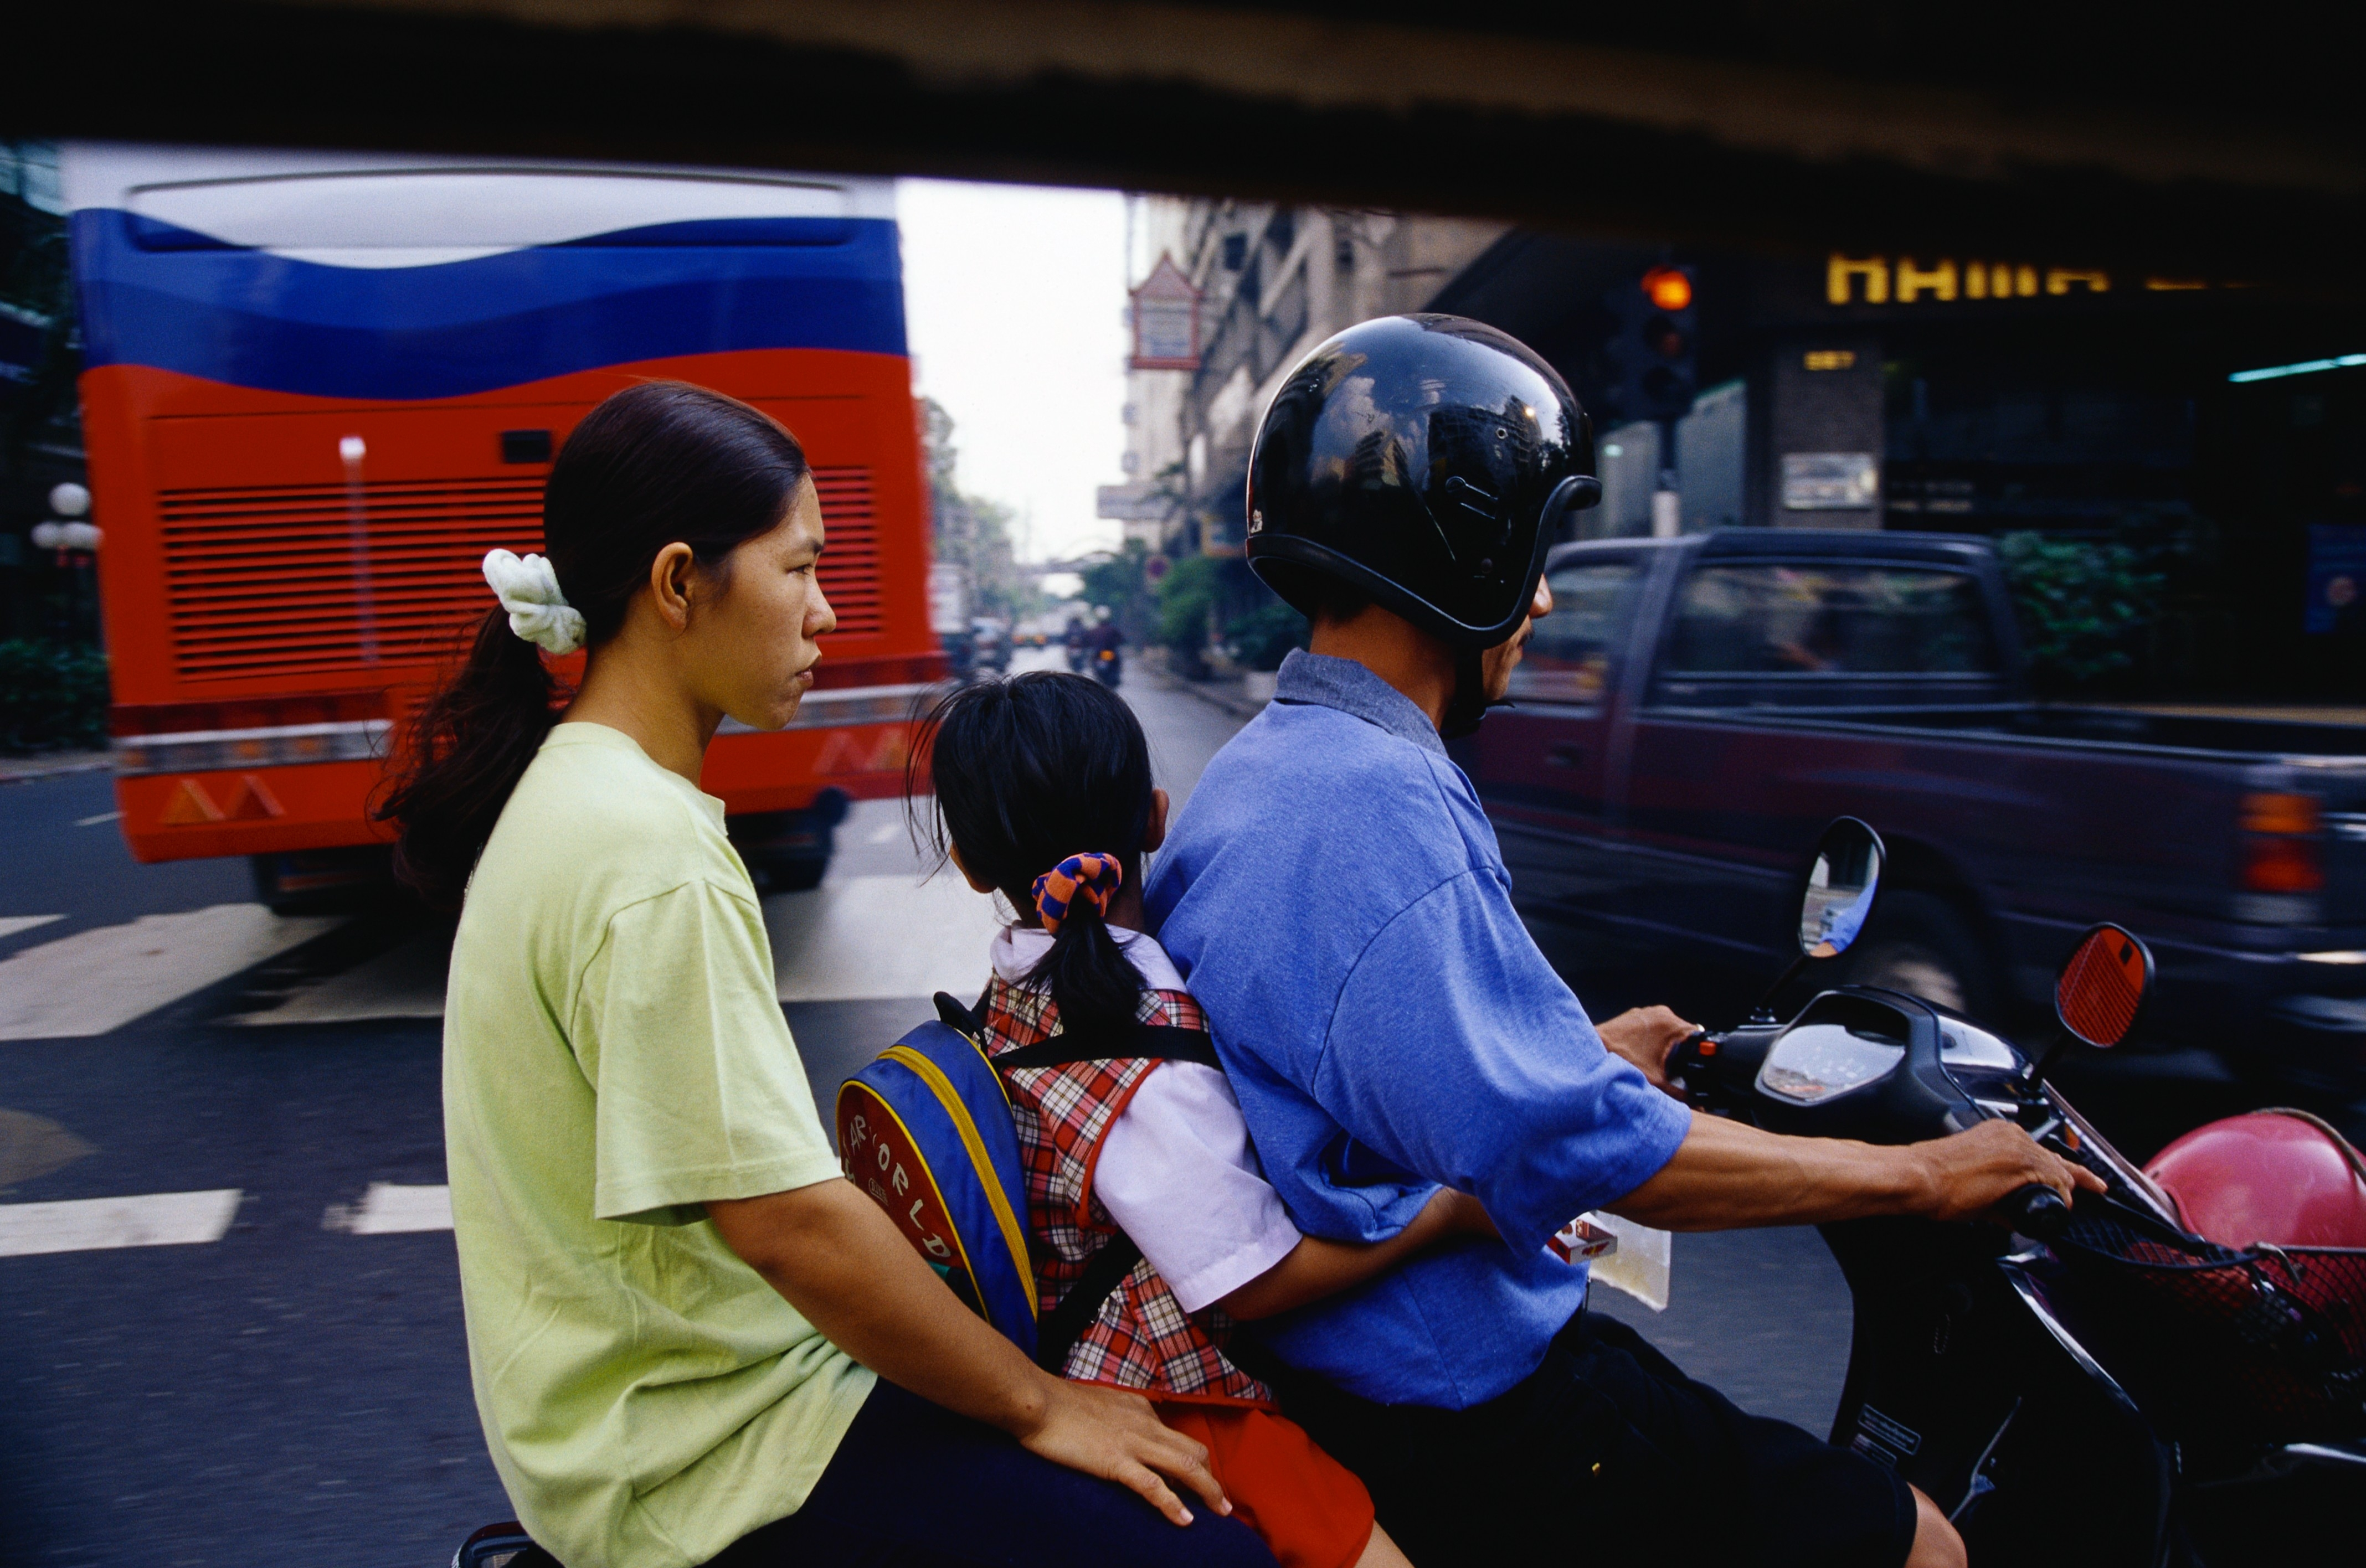 A family riding a motorcycle in Bangkok, Thailand Photo © Macduff Everton/CORBIS